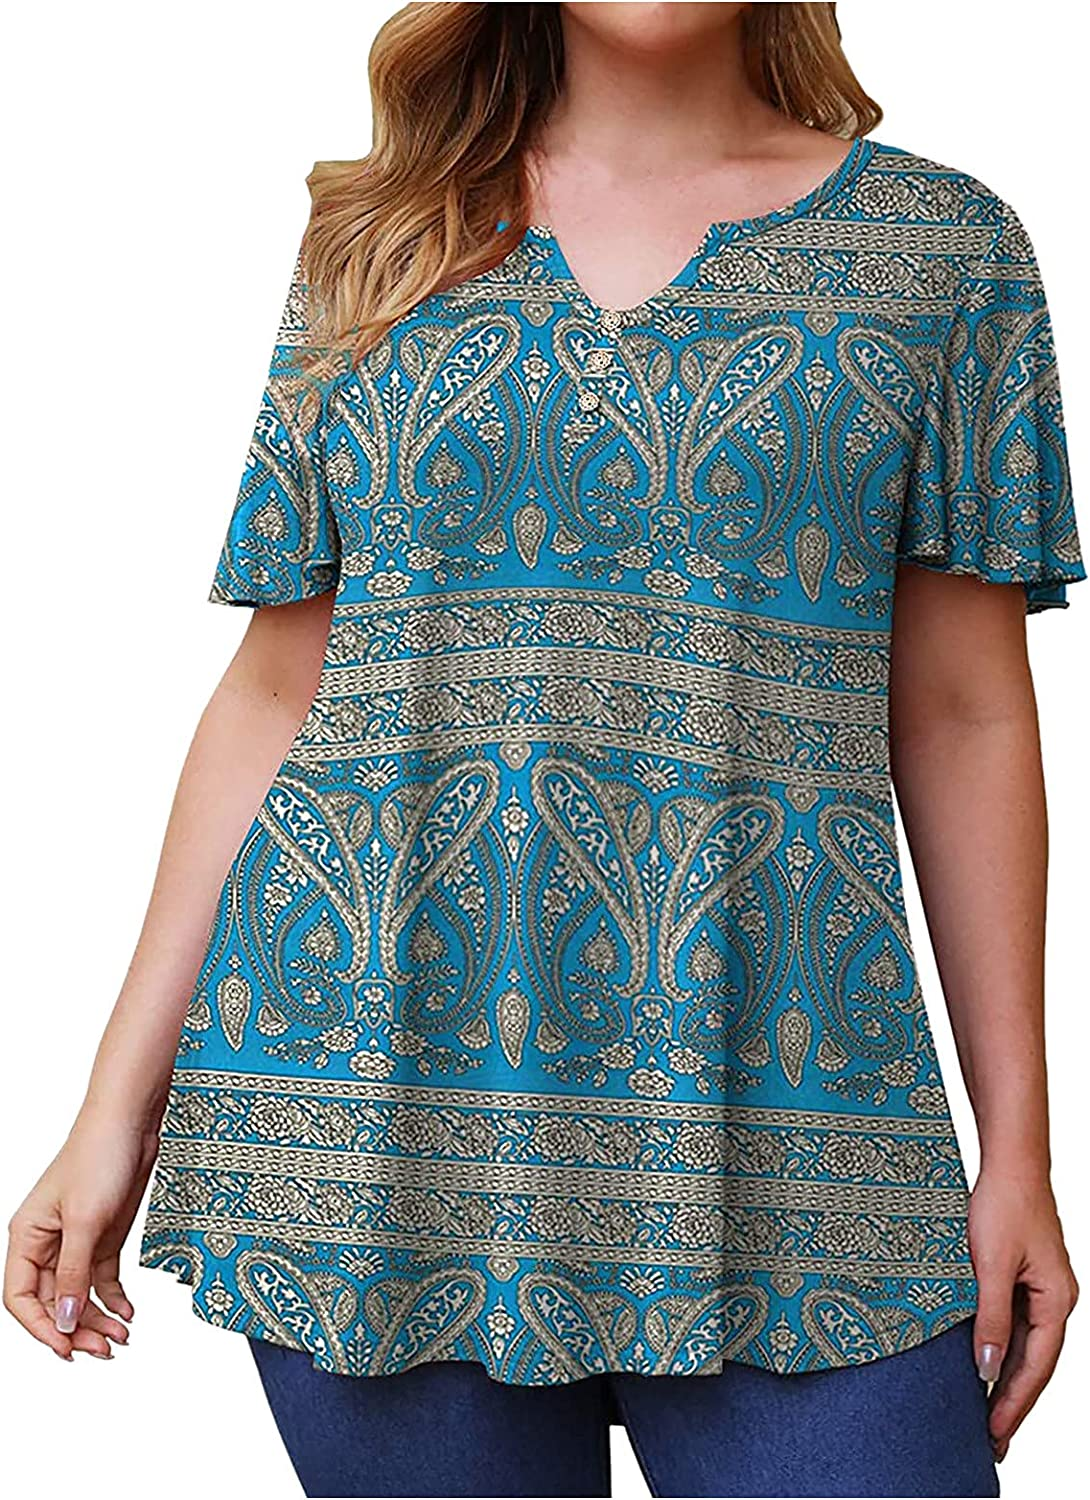 Womens Summer Indefinitely Tops Plus Size Women's Henley Nec V Seattle Mall Blouses Floral